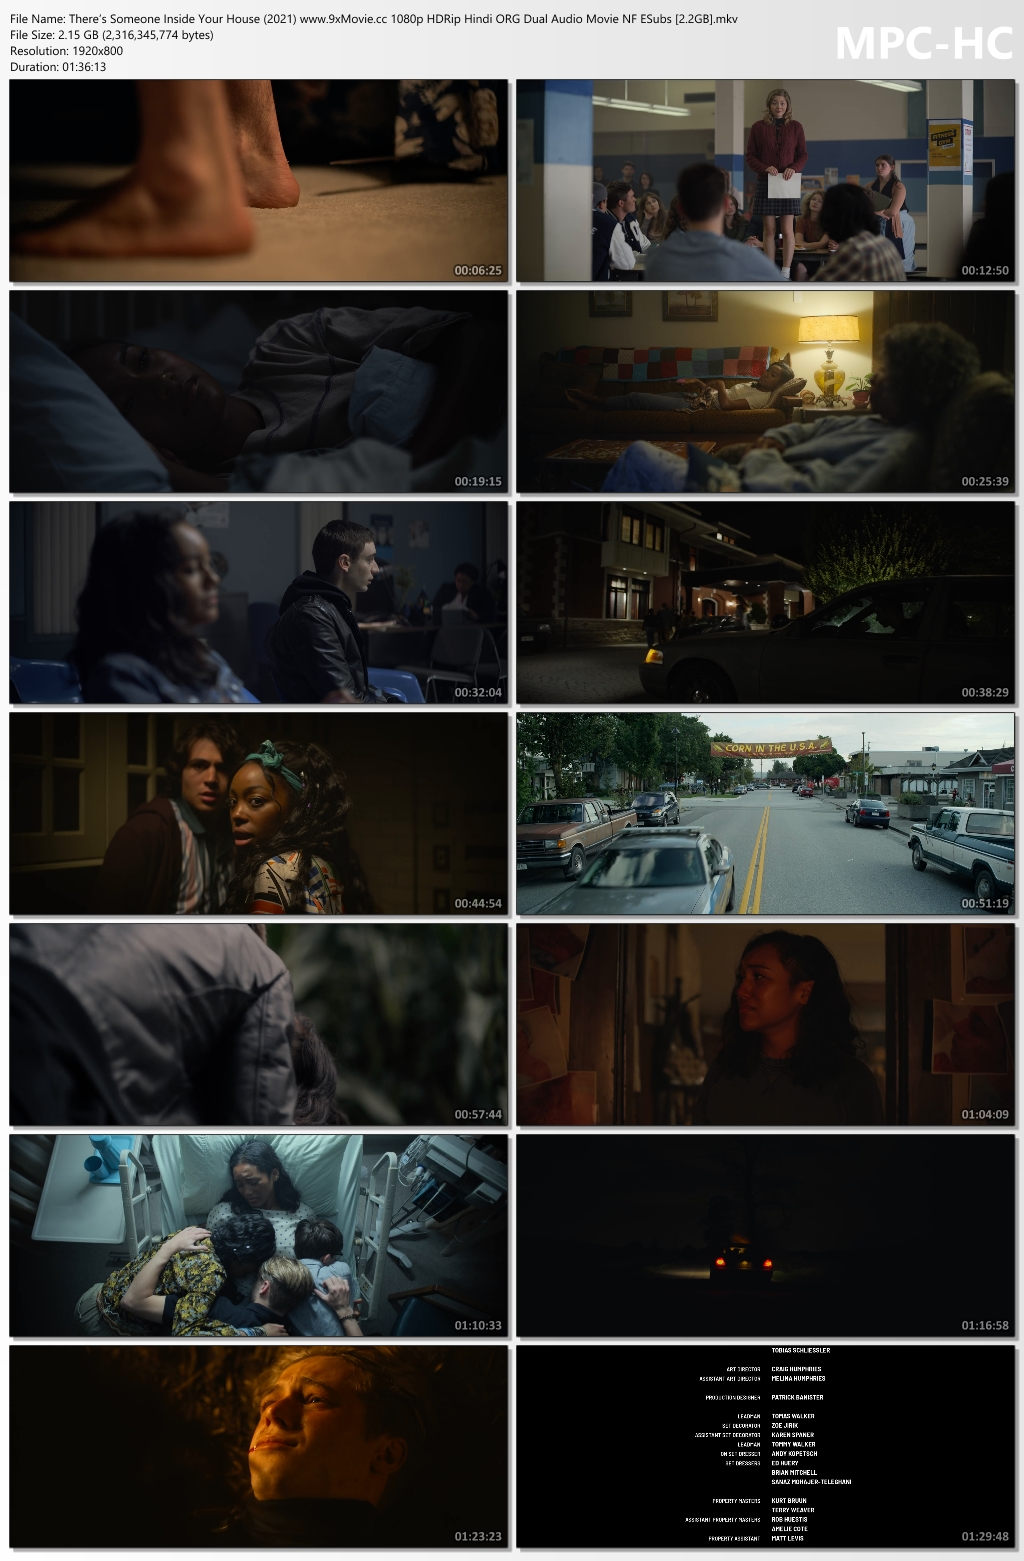 There-s-Someone-Inside-Your-House-2021-www-9x-Movie-cc-1080p-HDRip-Hindi-ORG-Dual-Audio-Movie-NF-ESu